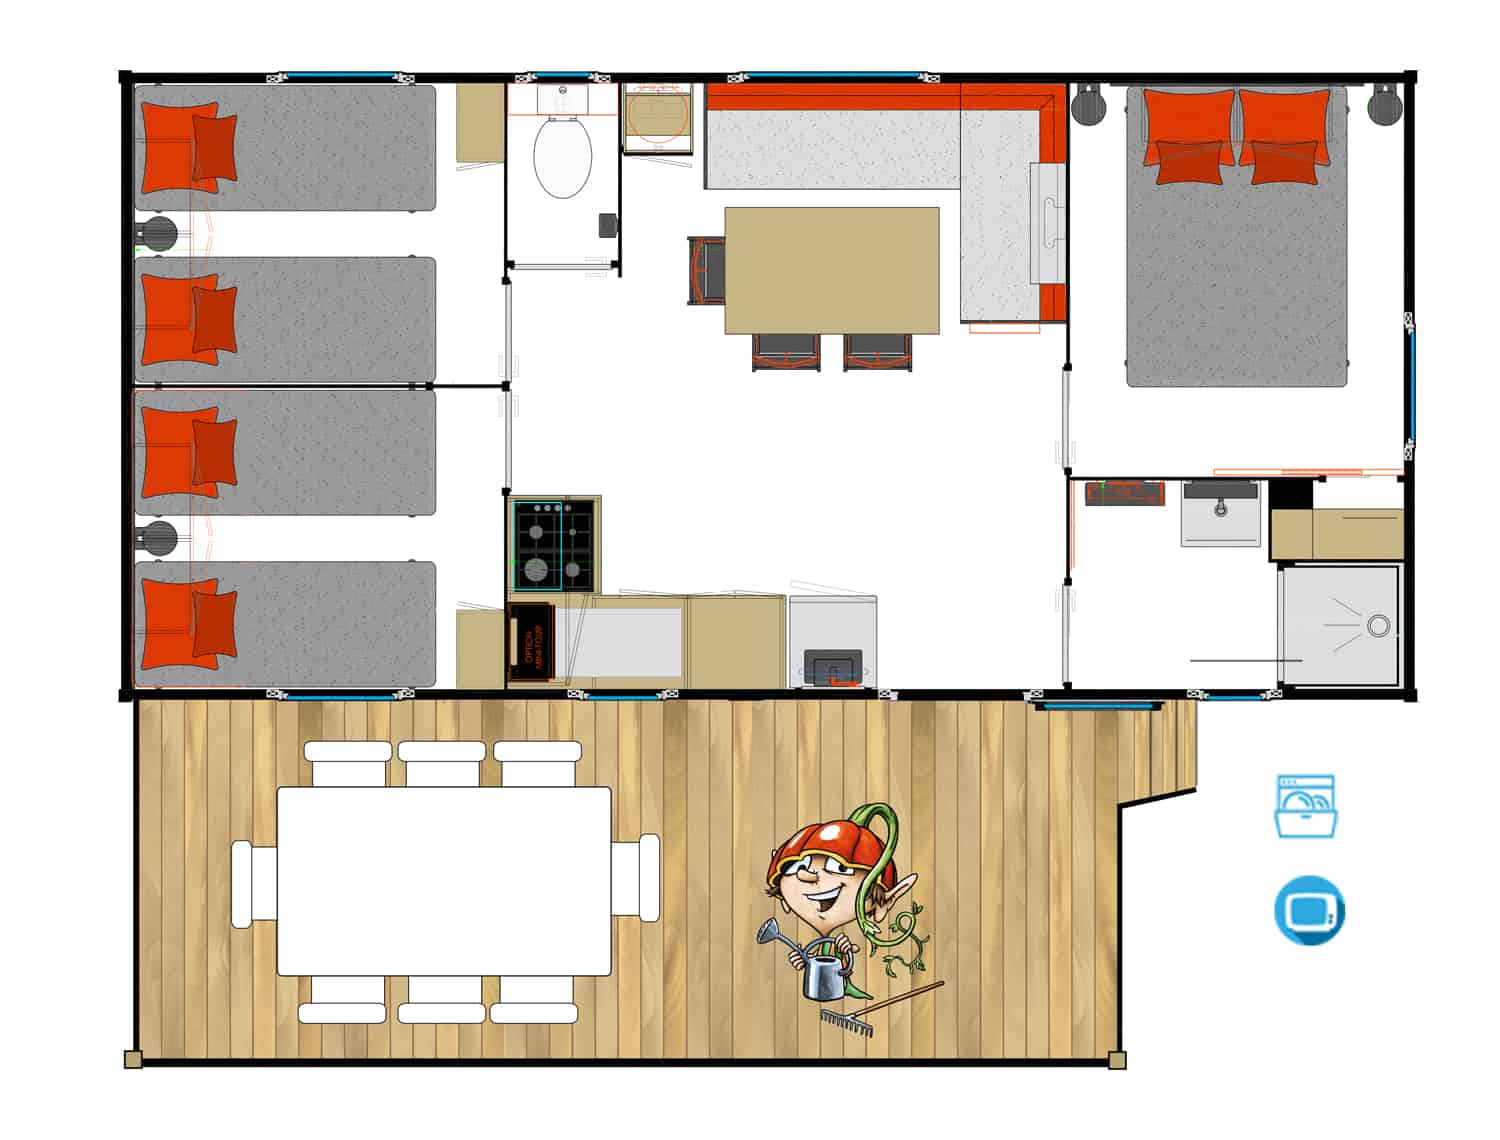 Capfun lodge resort plattegrond